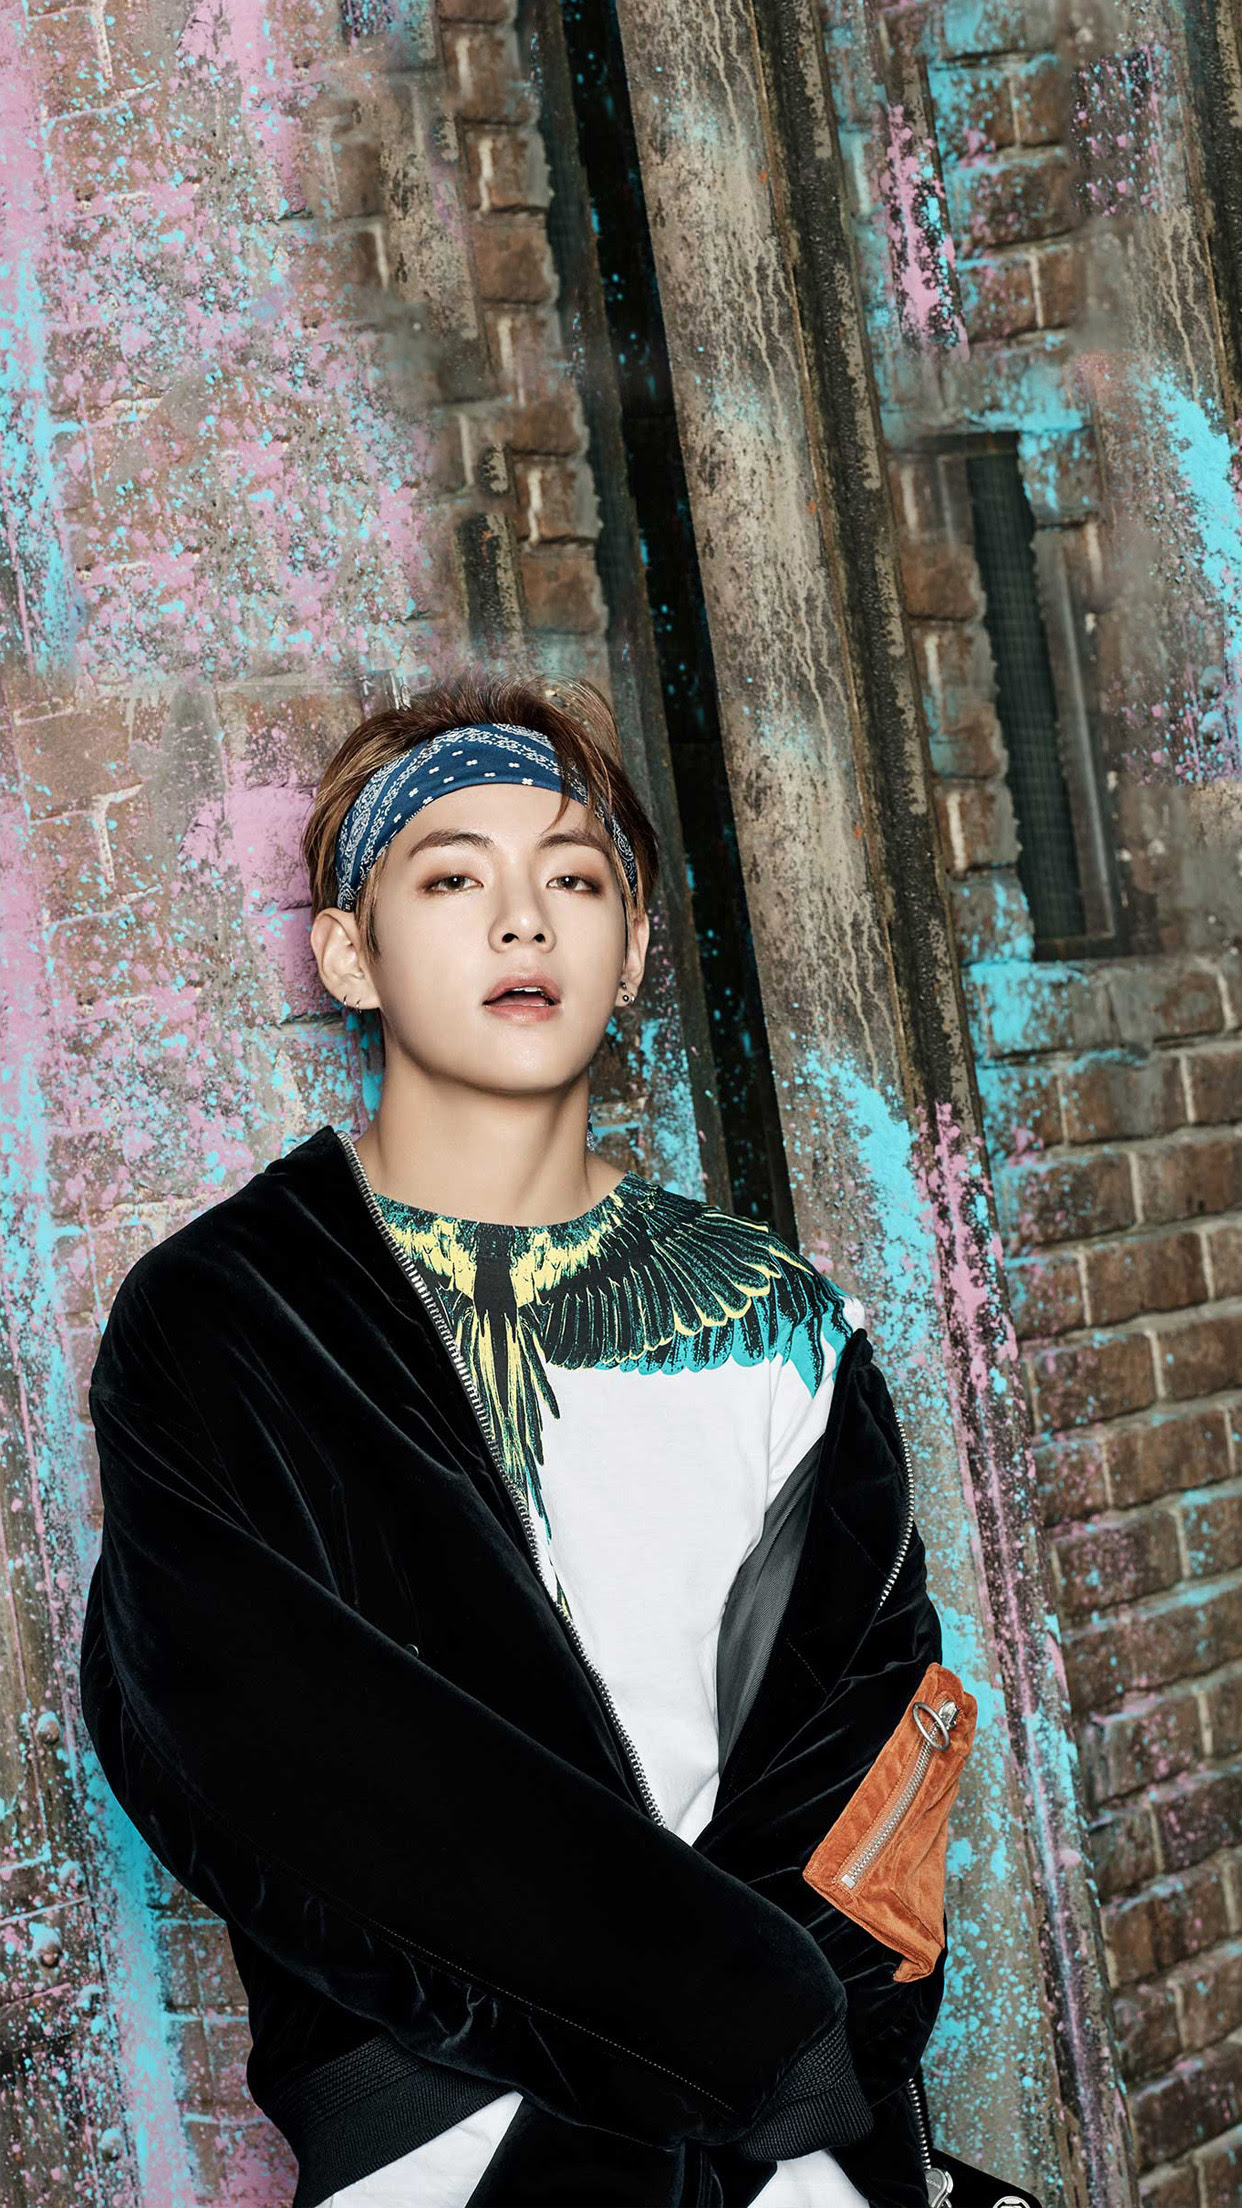 Bts V Wallpaper Hd Iphone